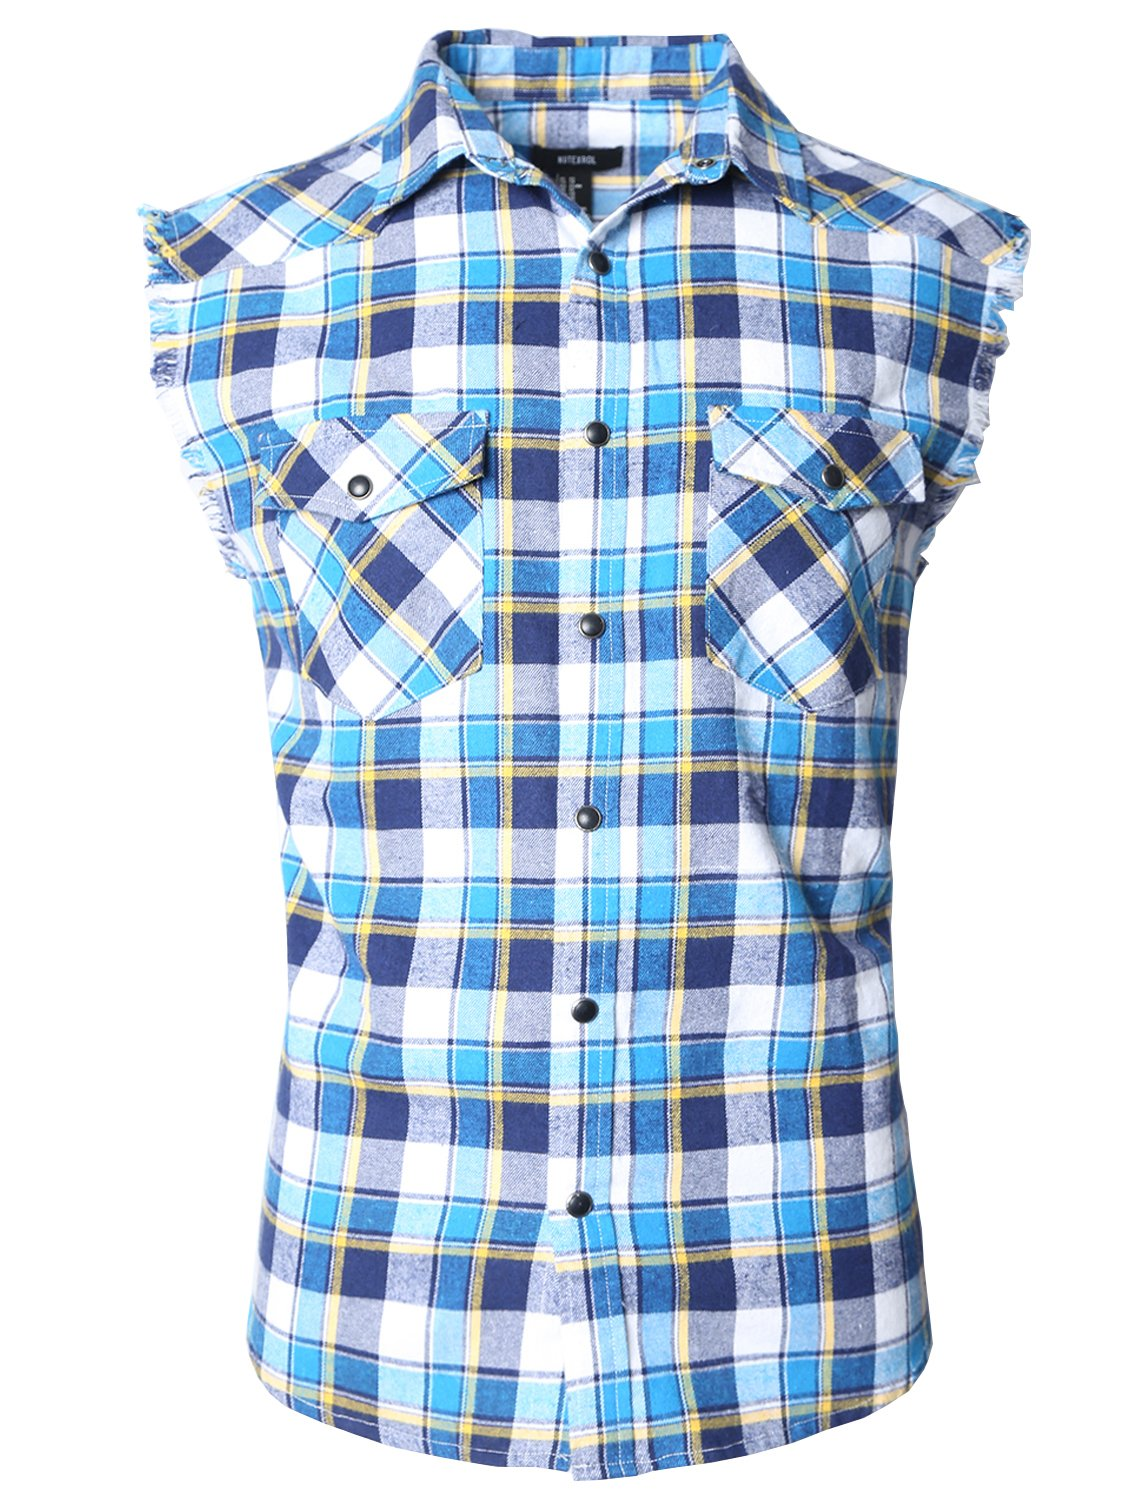 NUTEXROL Men's Casual Flannel Plaid Shirt Sleeveless Cotton Plus Size CA-WXGZ